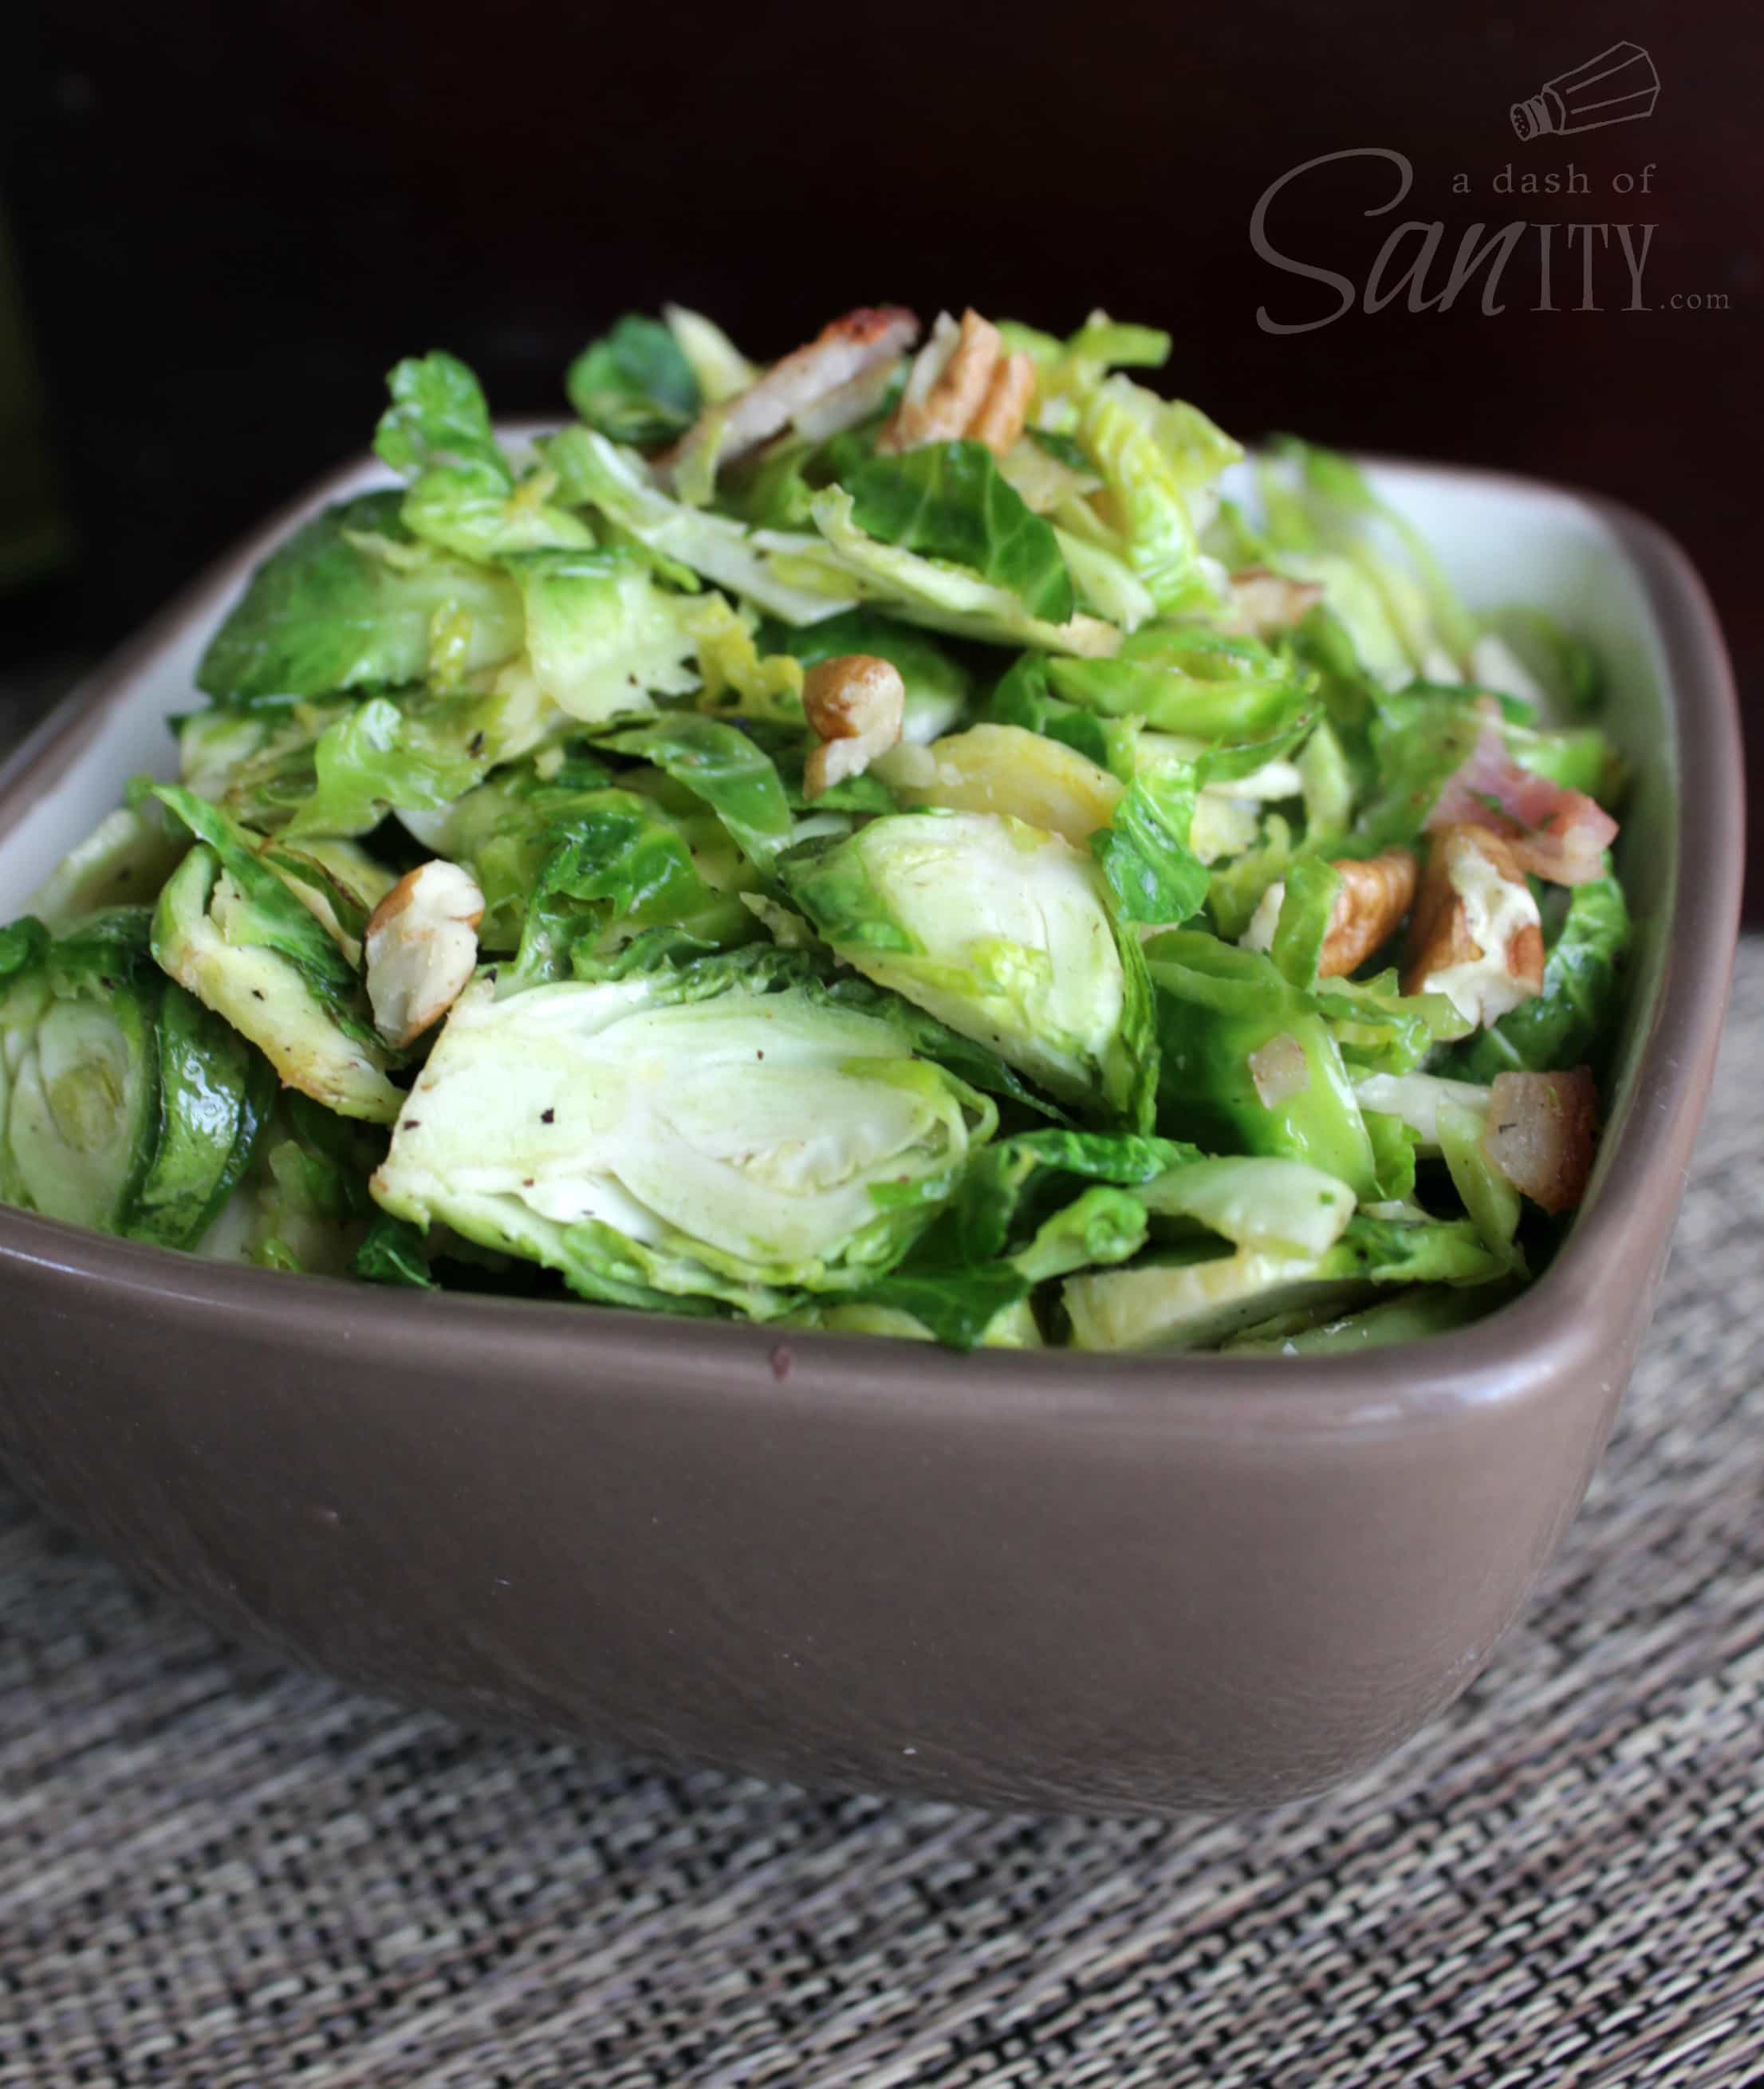 Bacon and Walnut Brussel Sprouts salad served in a bowl